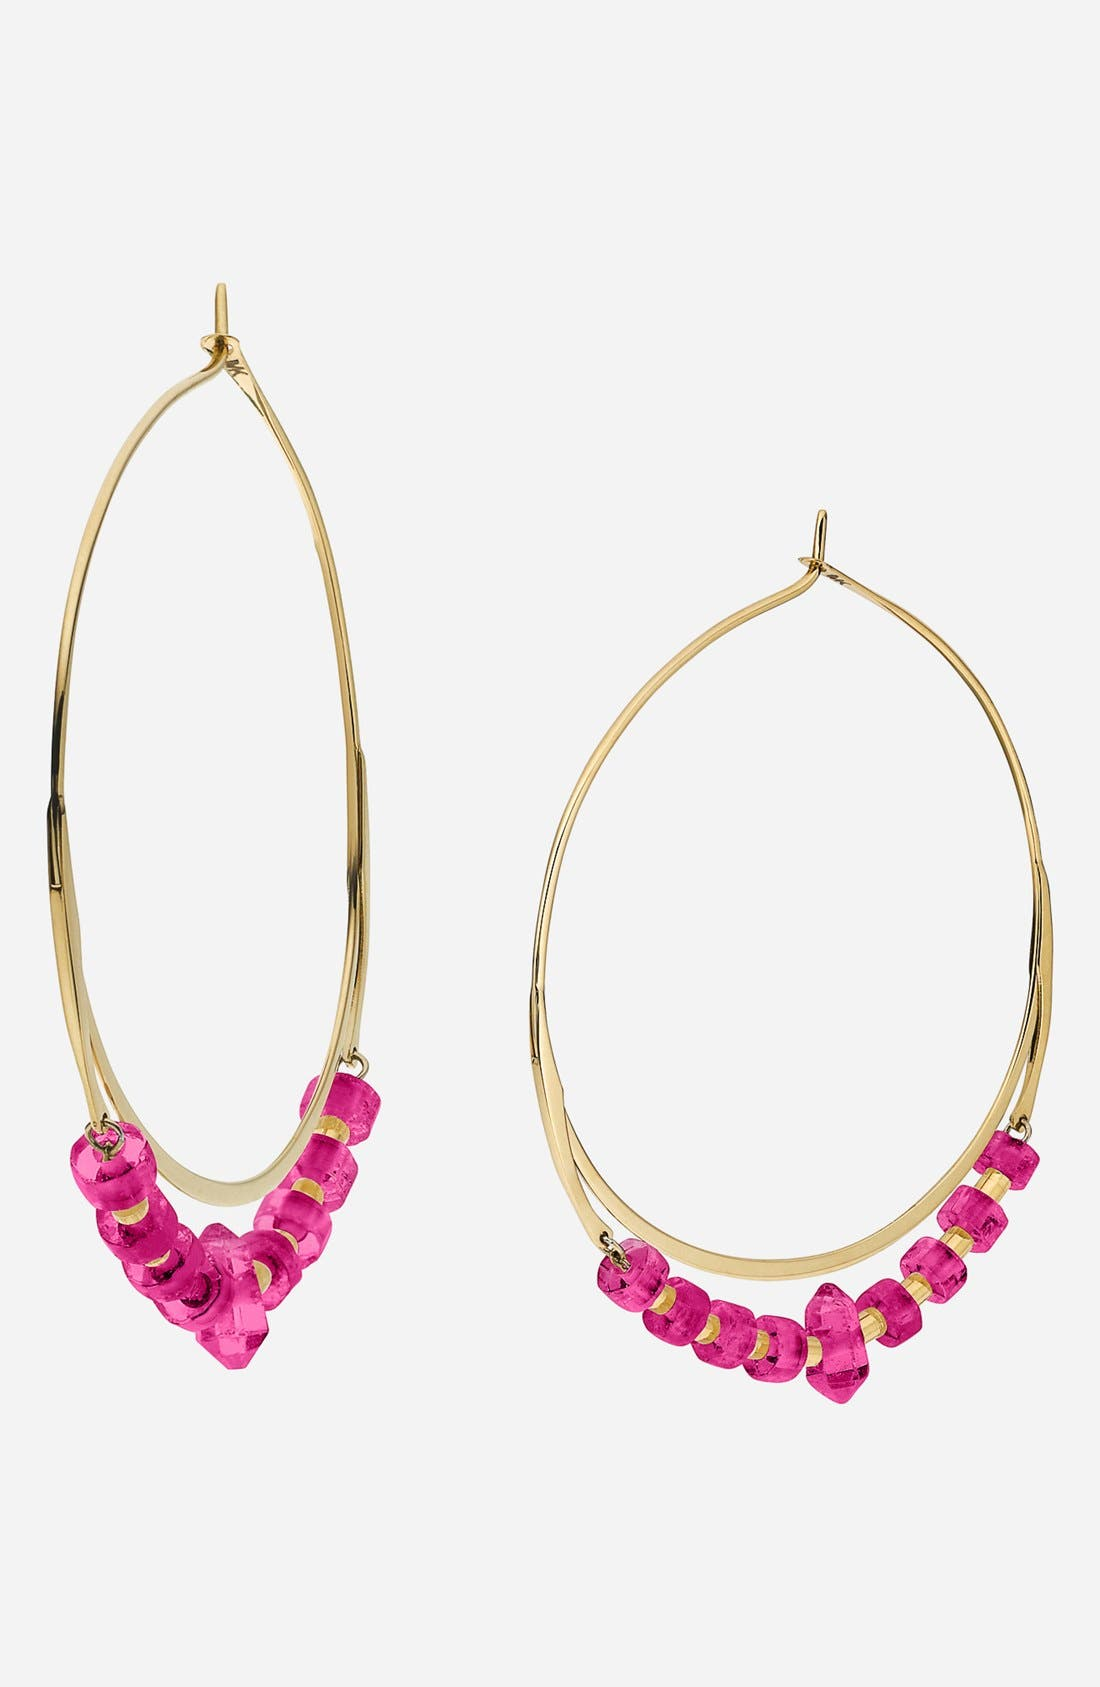 Alternate Image 1 Selected - Michael Kors 'Seaside Luxe - Whisper' Hoop Earrings